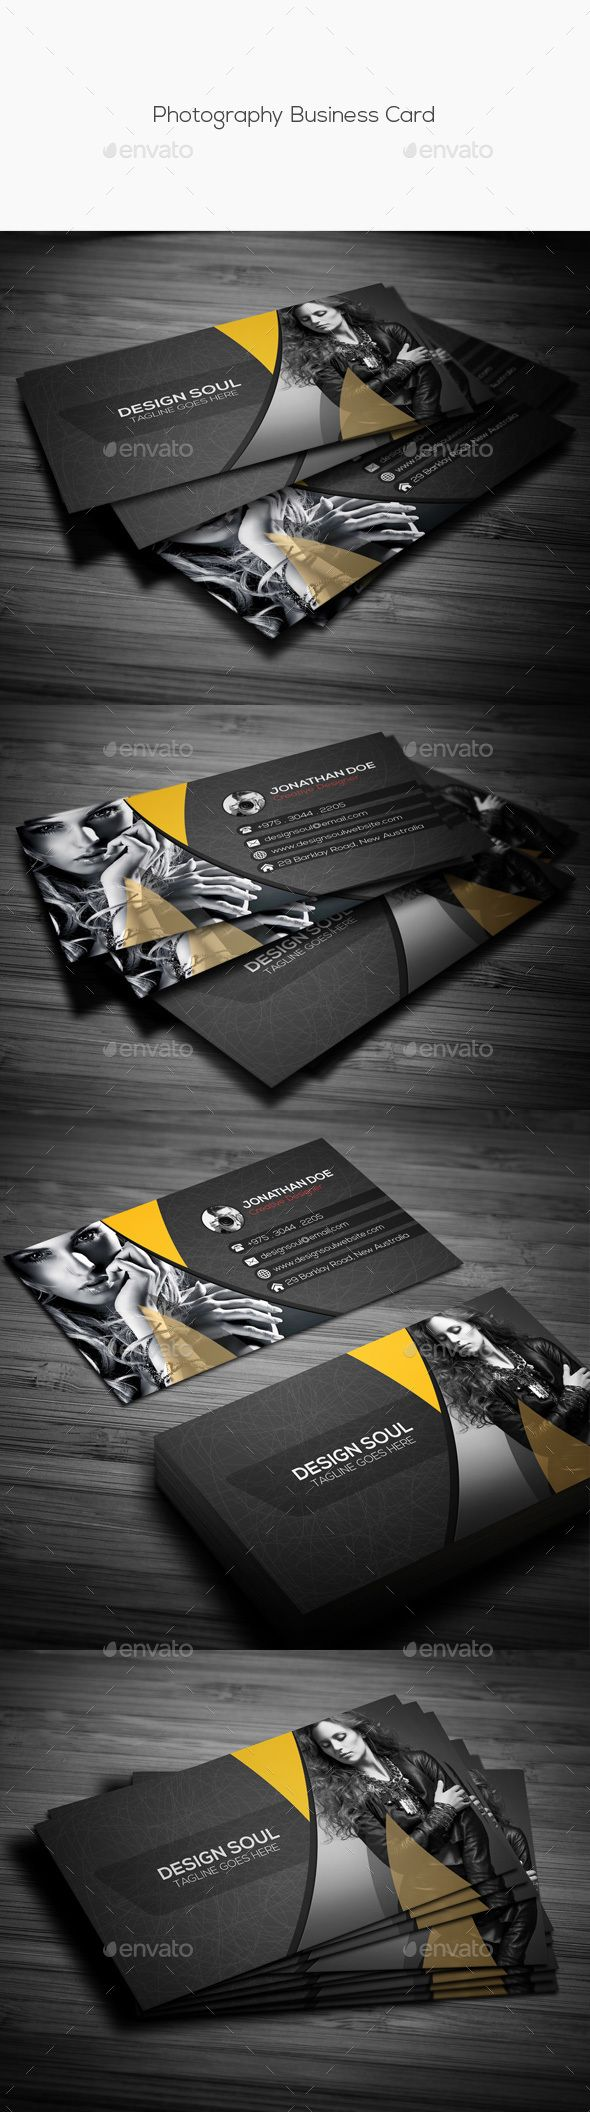 Photography business card tipografia e sinalizao photography business card cartes de visitatemplates psdprojeto reheart Images